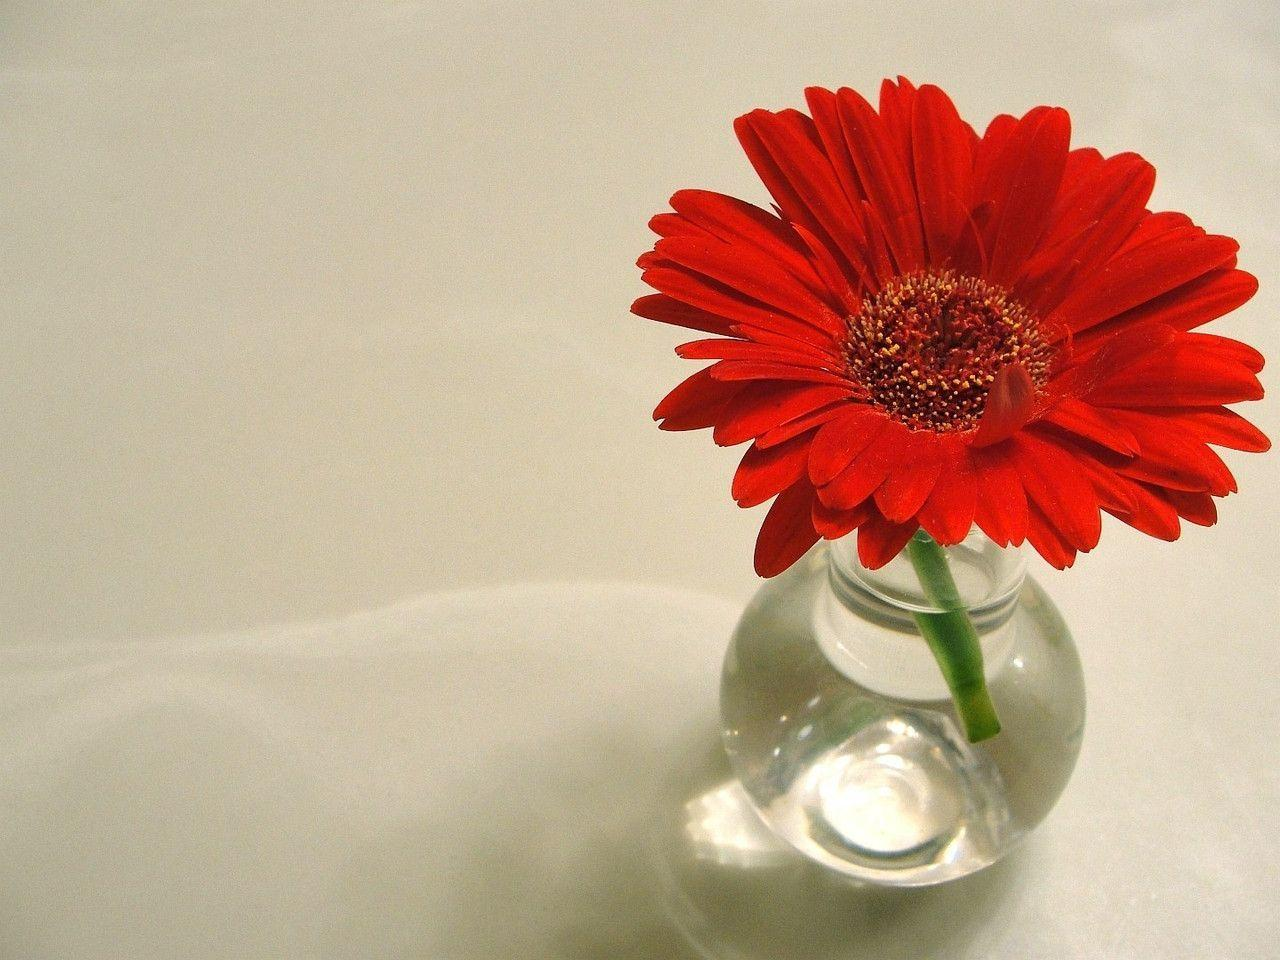 red daisy flower hd - photo #27